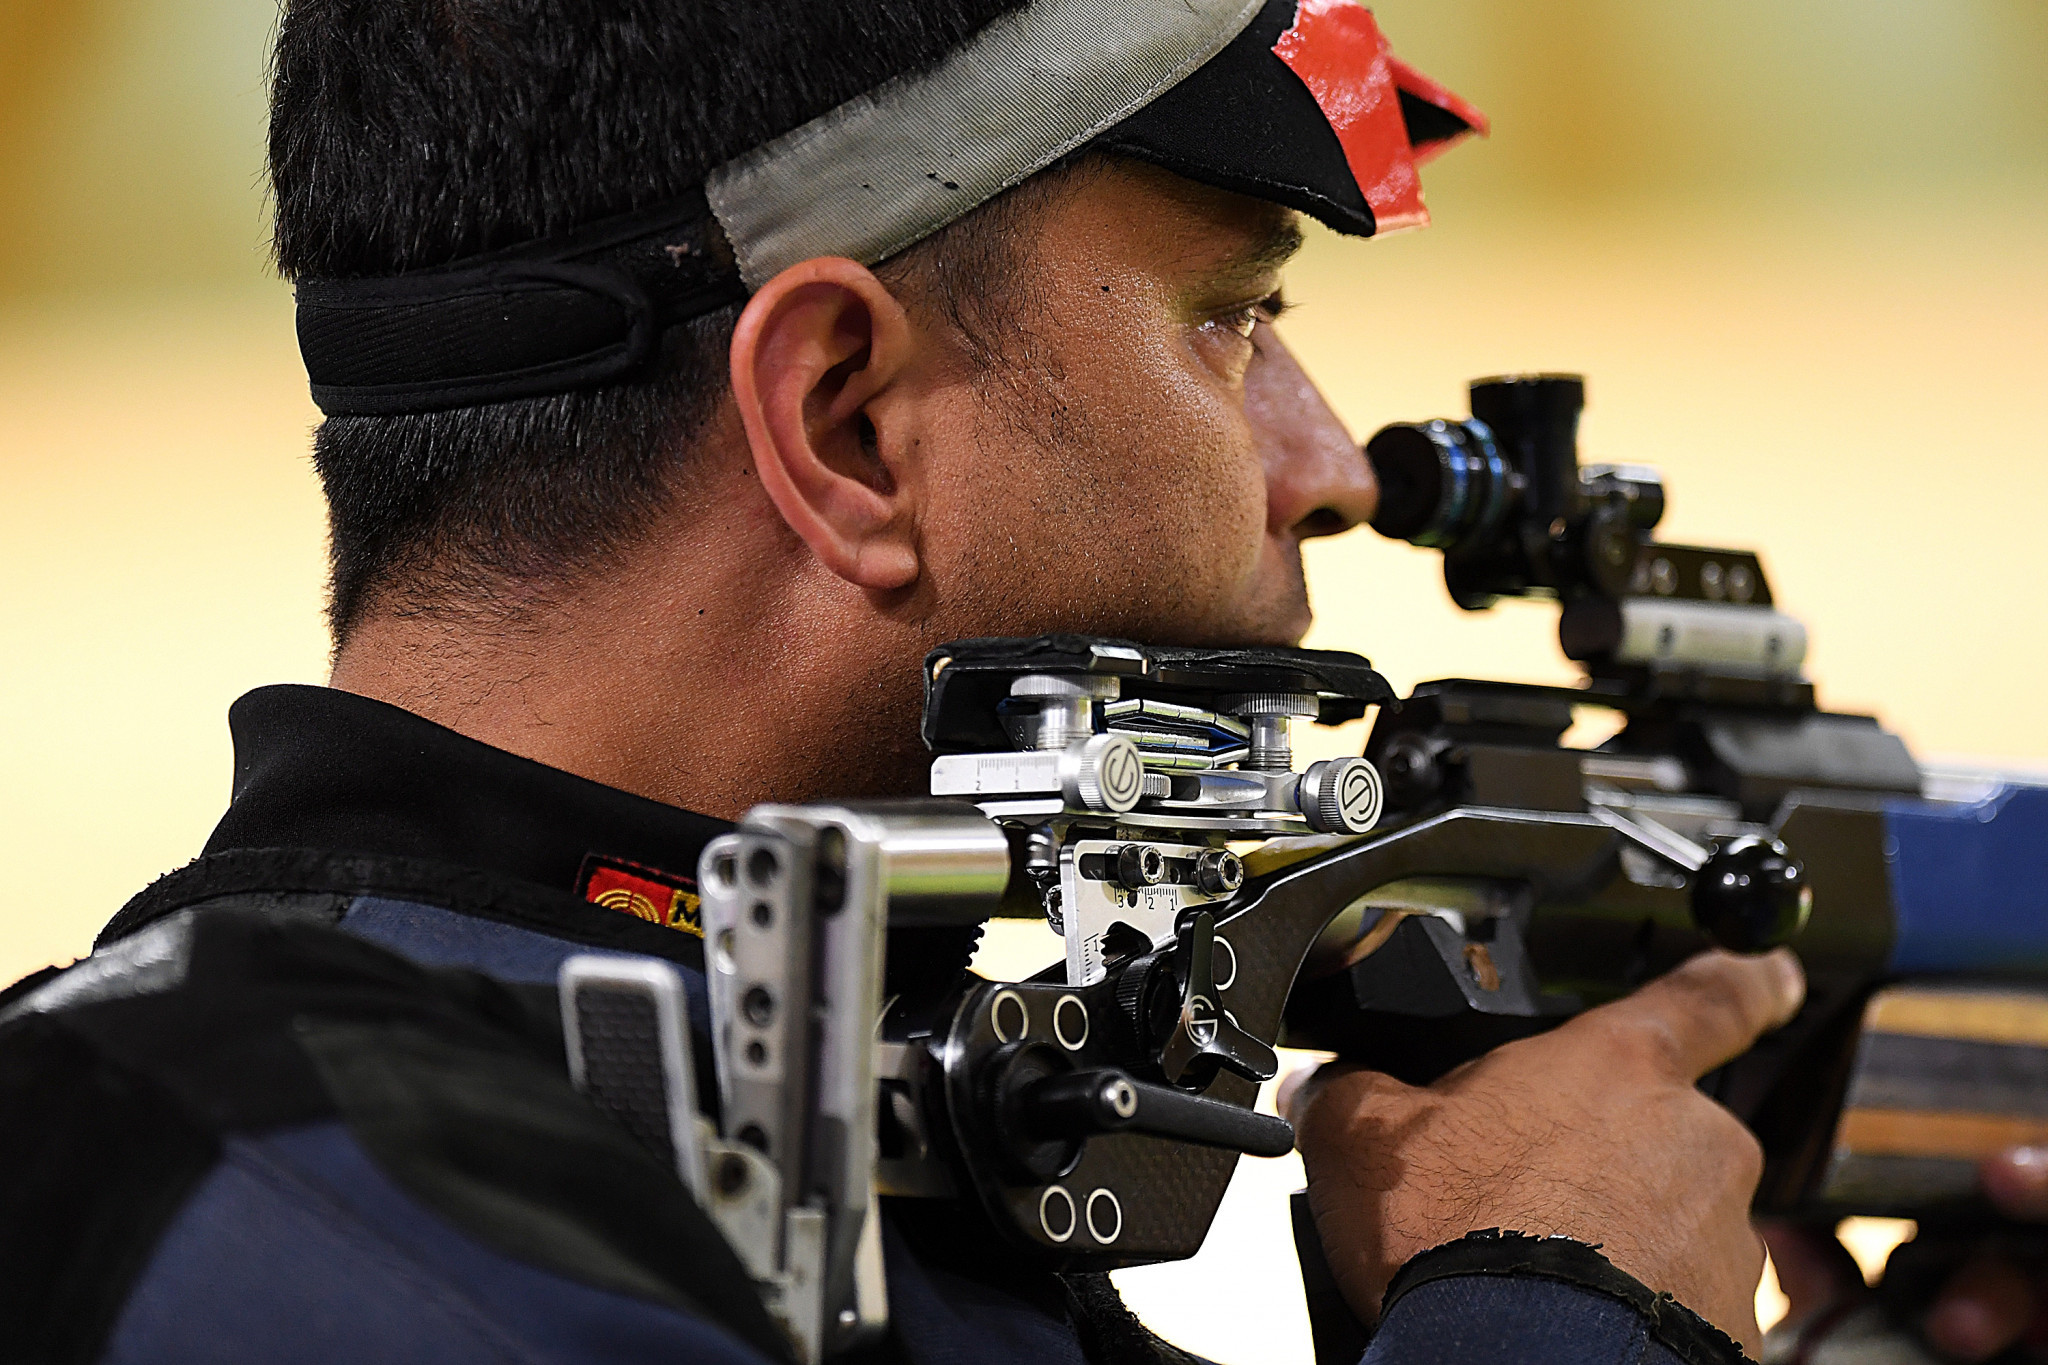 A Commonwealth Games shooting medal event could be held in India before Birmingham 2022 ©Getty Images